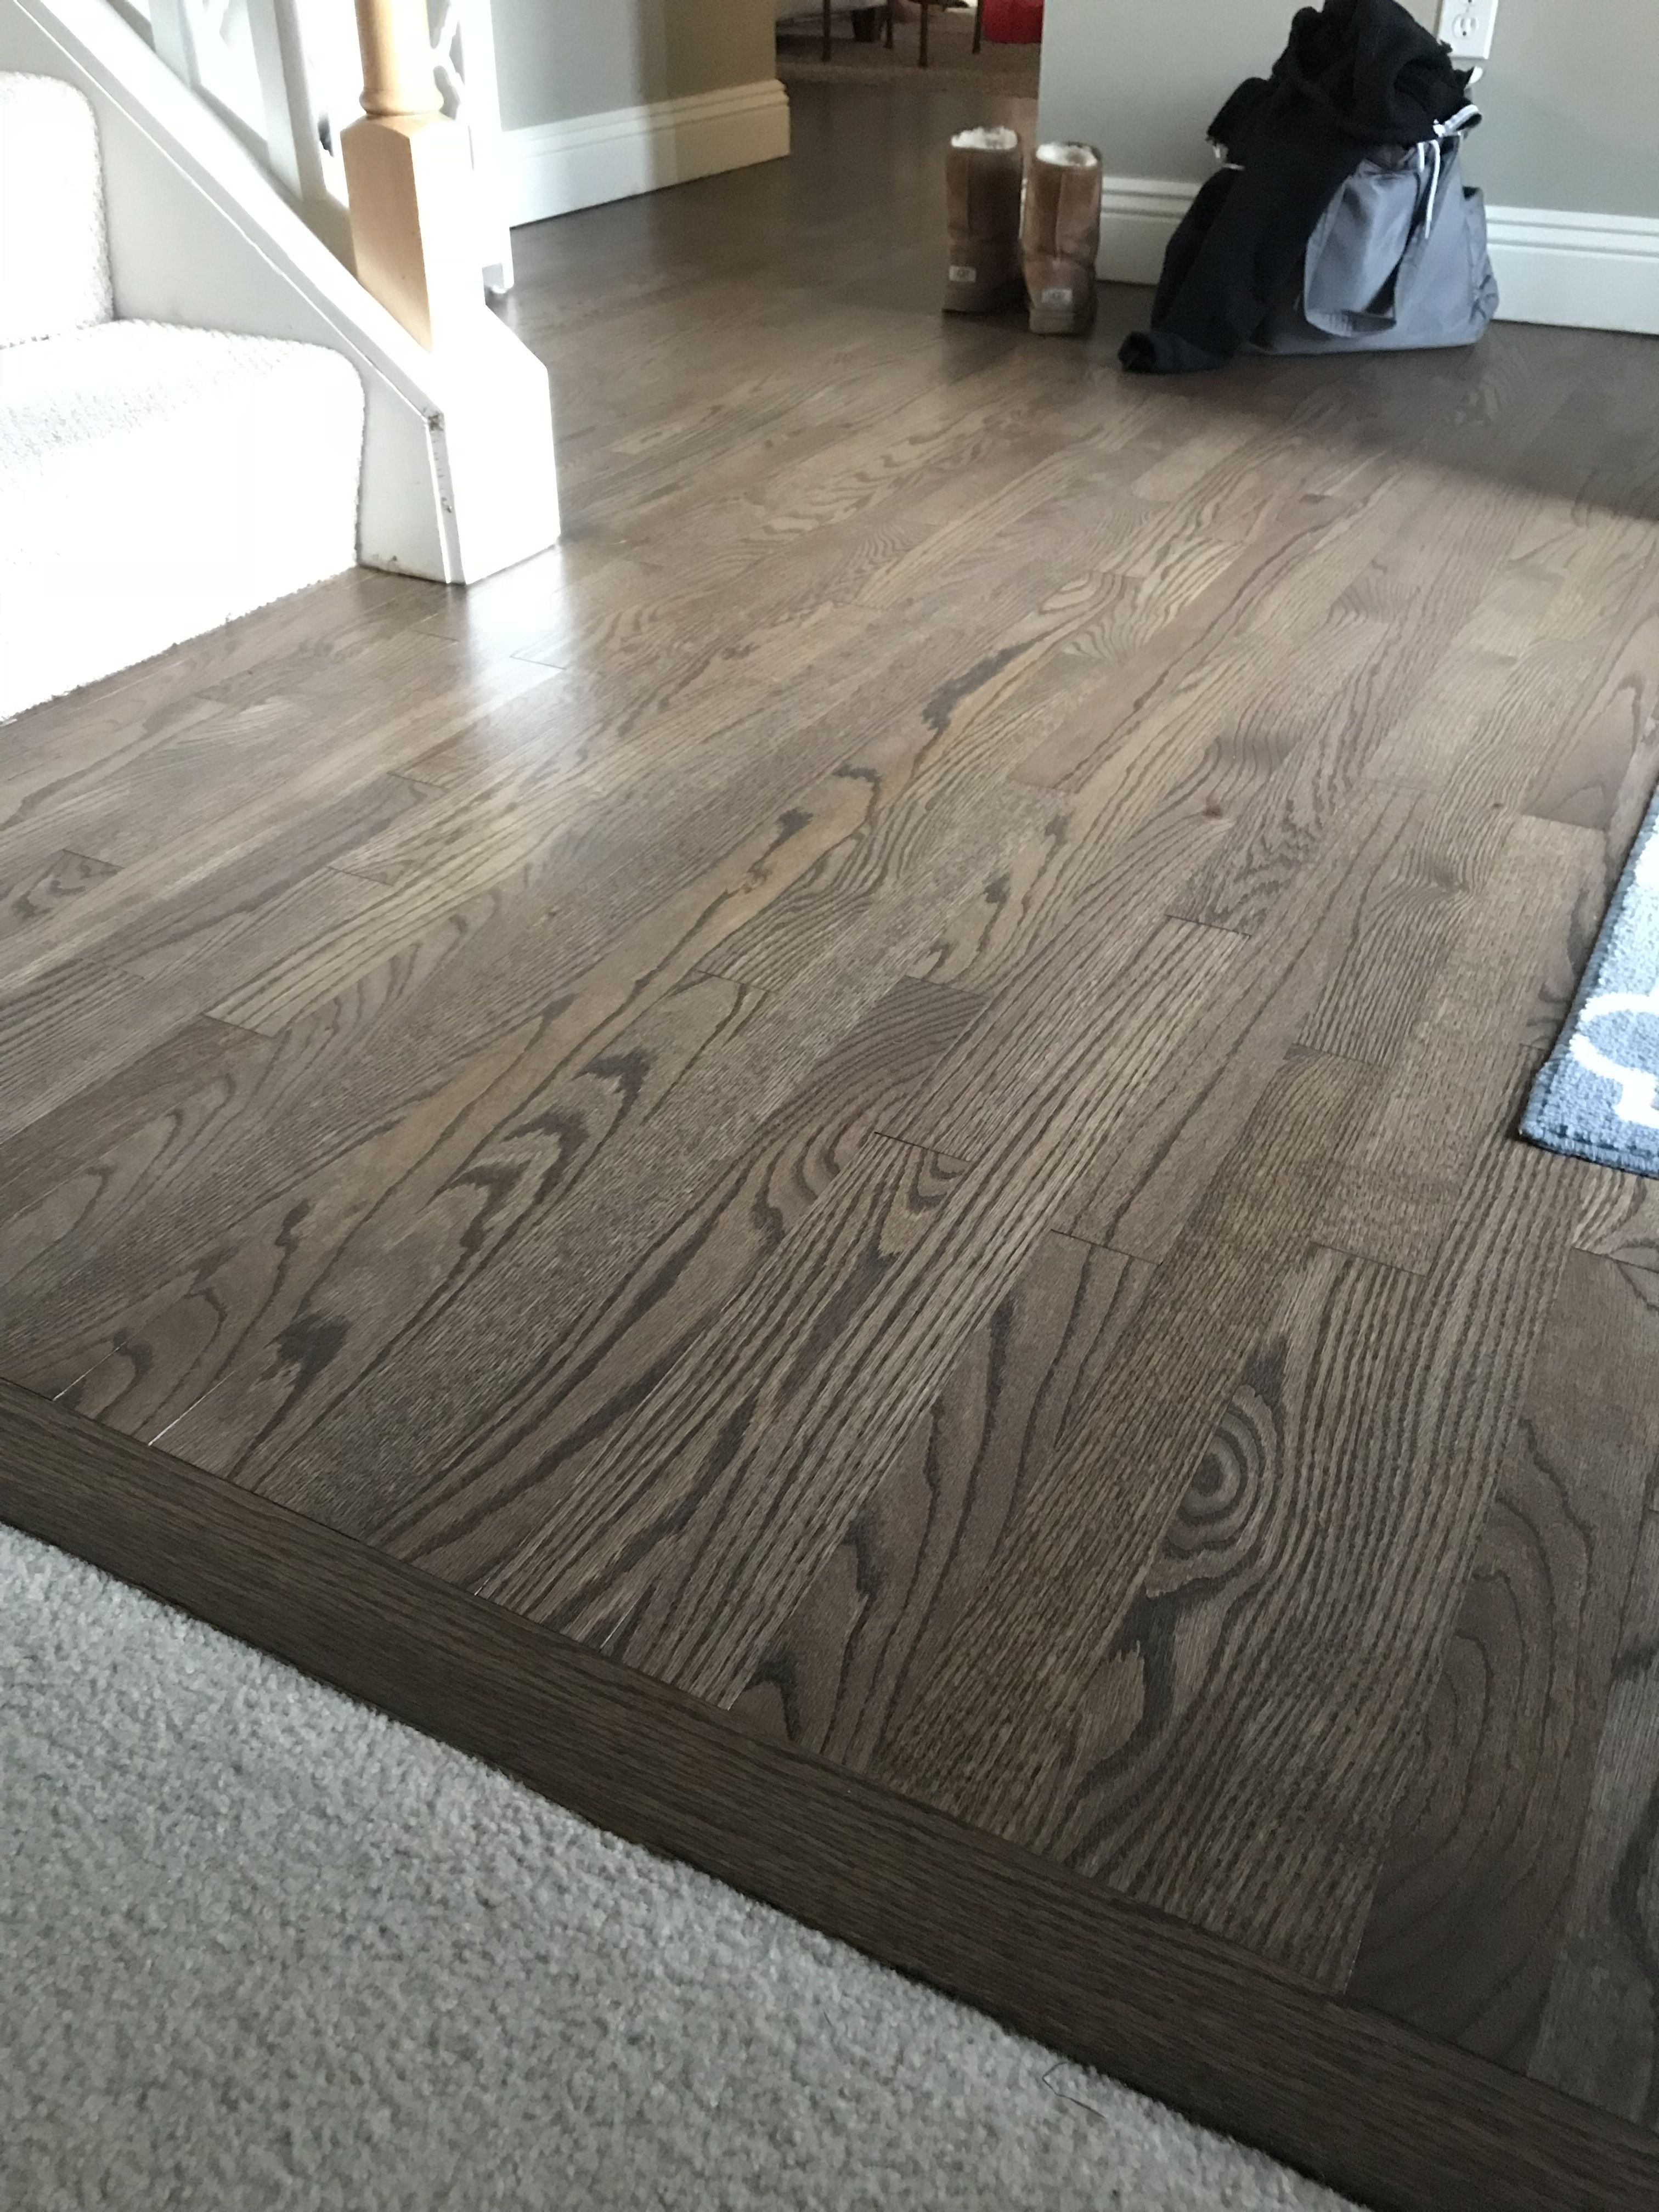 Hardwood Floors Refinished In Espresso And Grey Wood Floor Colors Hardwood Floors Wood Floor Stain Colors